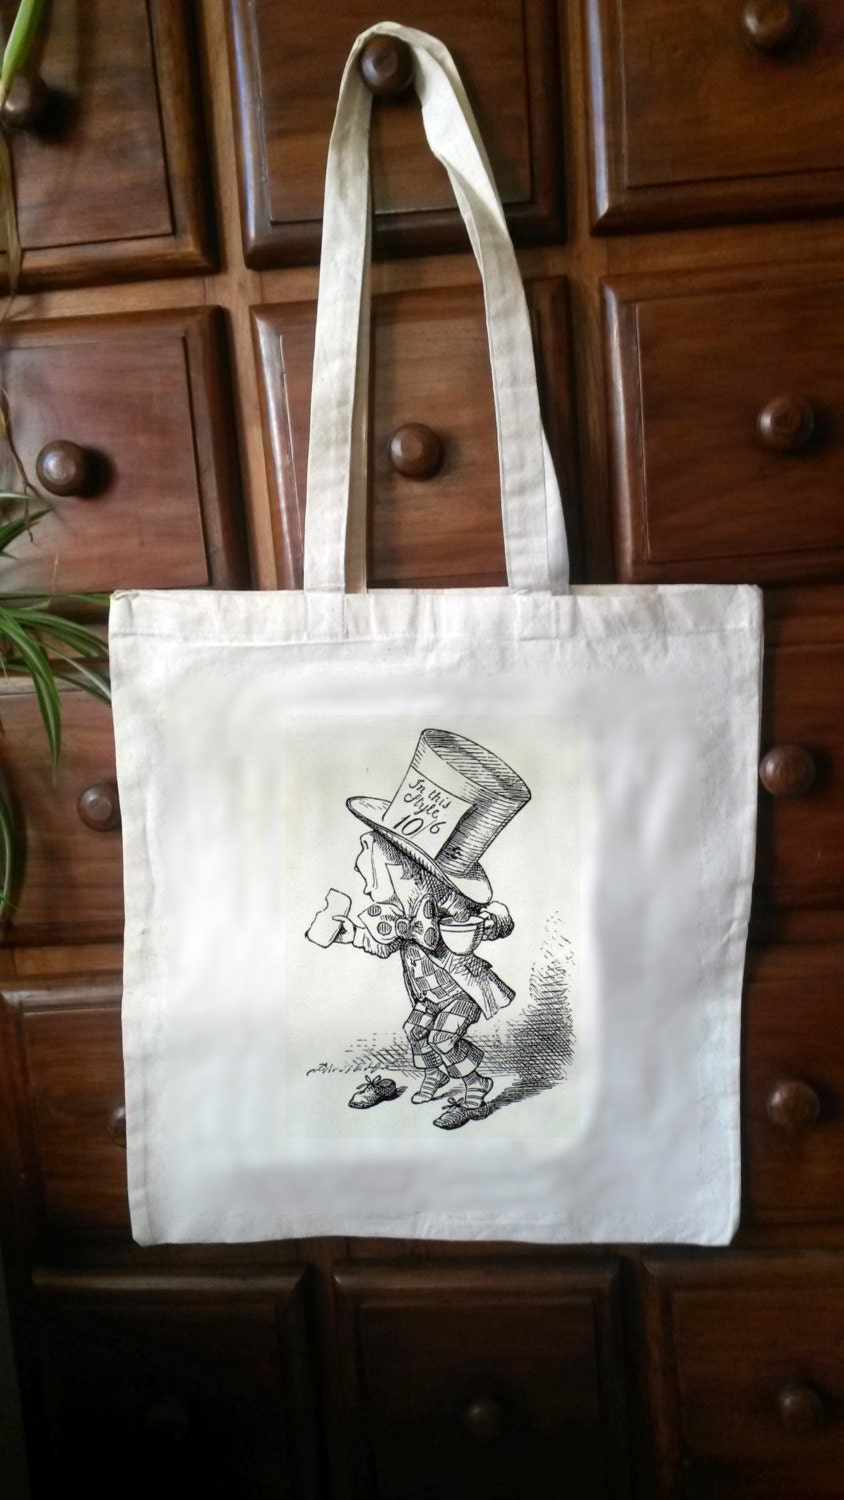 One CreamWhite Cotton Tote with an original illustration taken from the first edition of CS Lewiss Alice in Wonderland (Bag03)